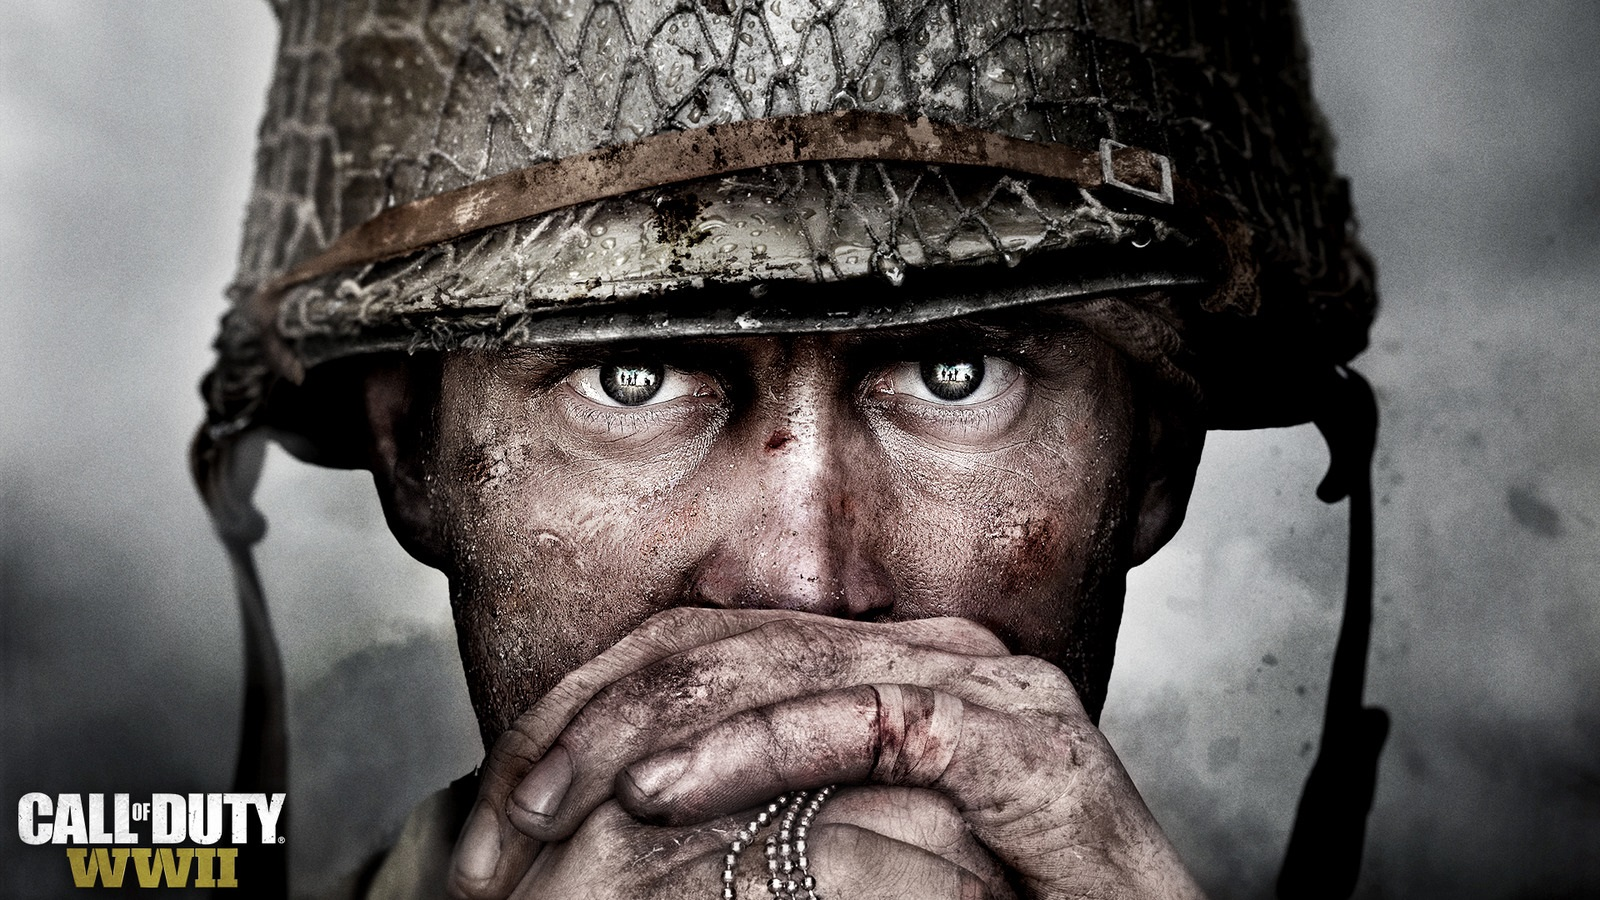 Call of Duty: WWII is the 'right game at the right time'